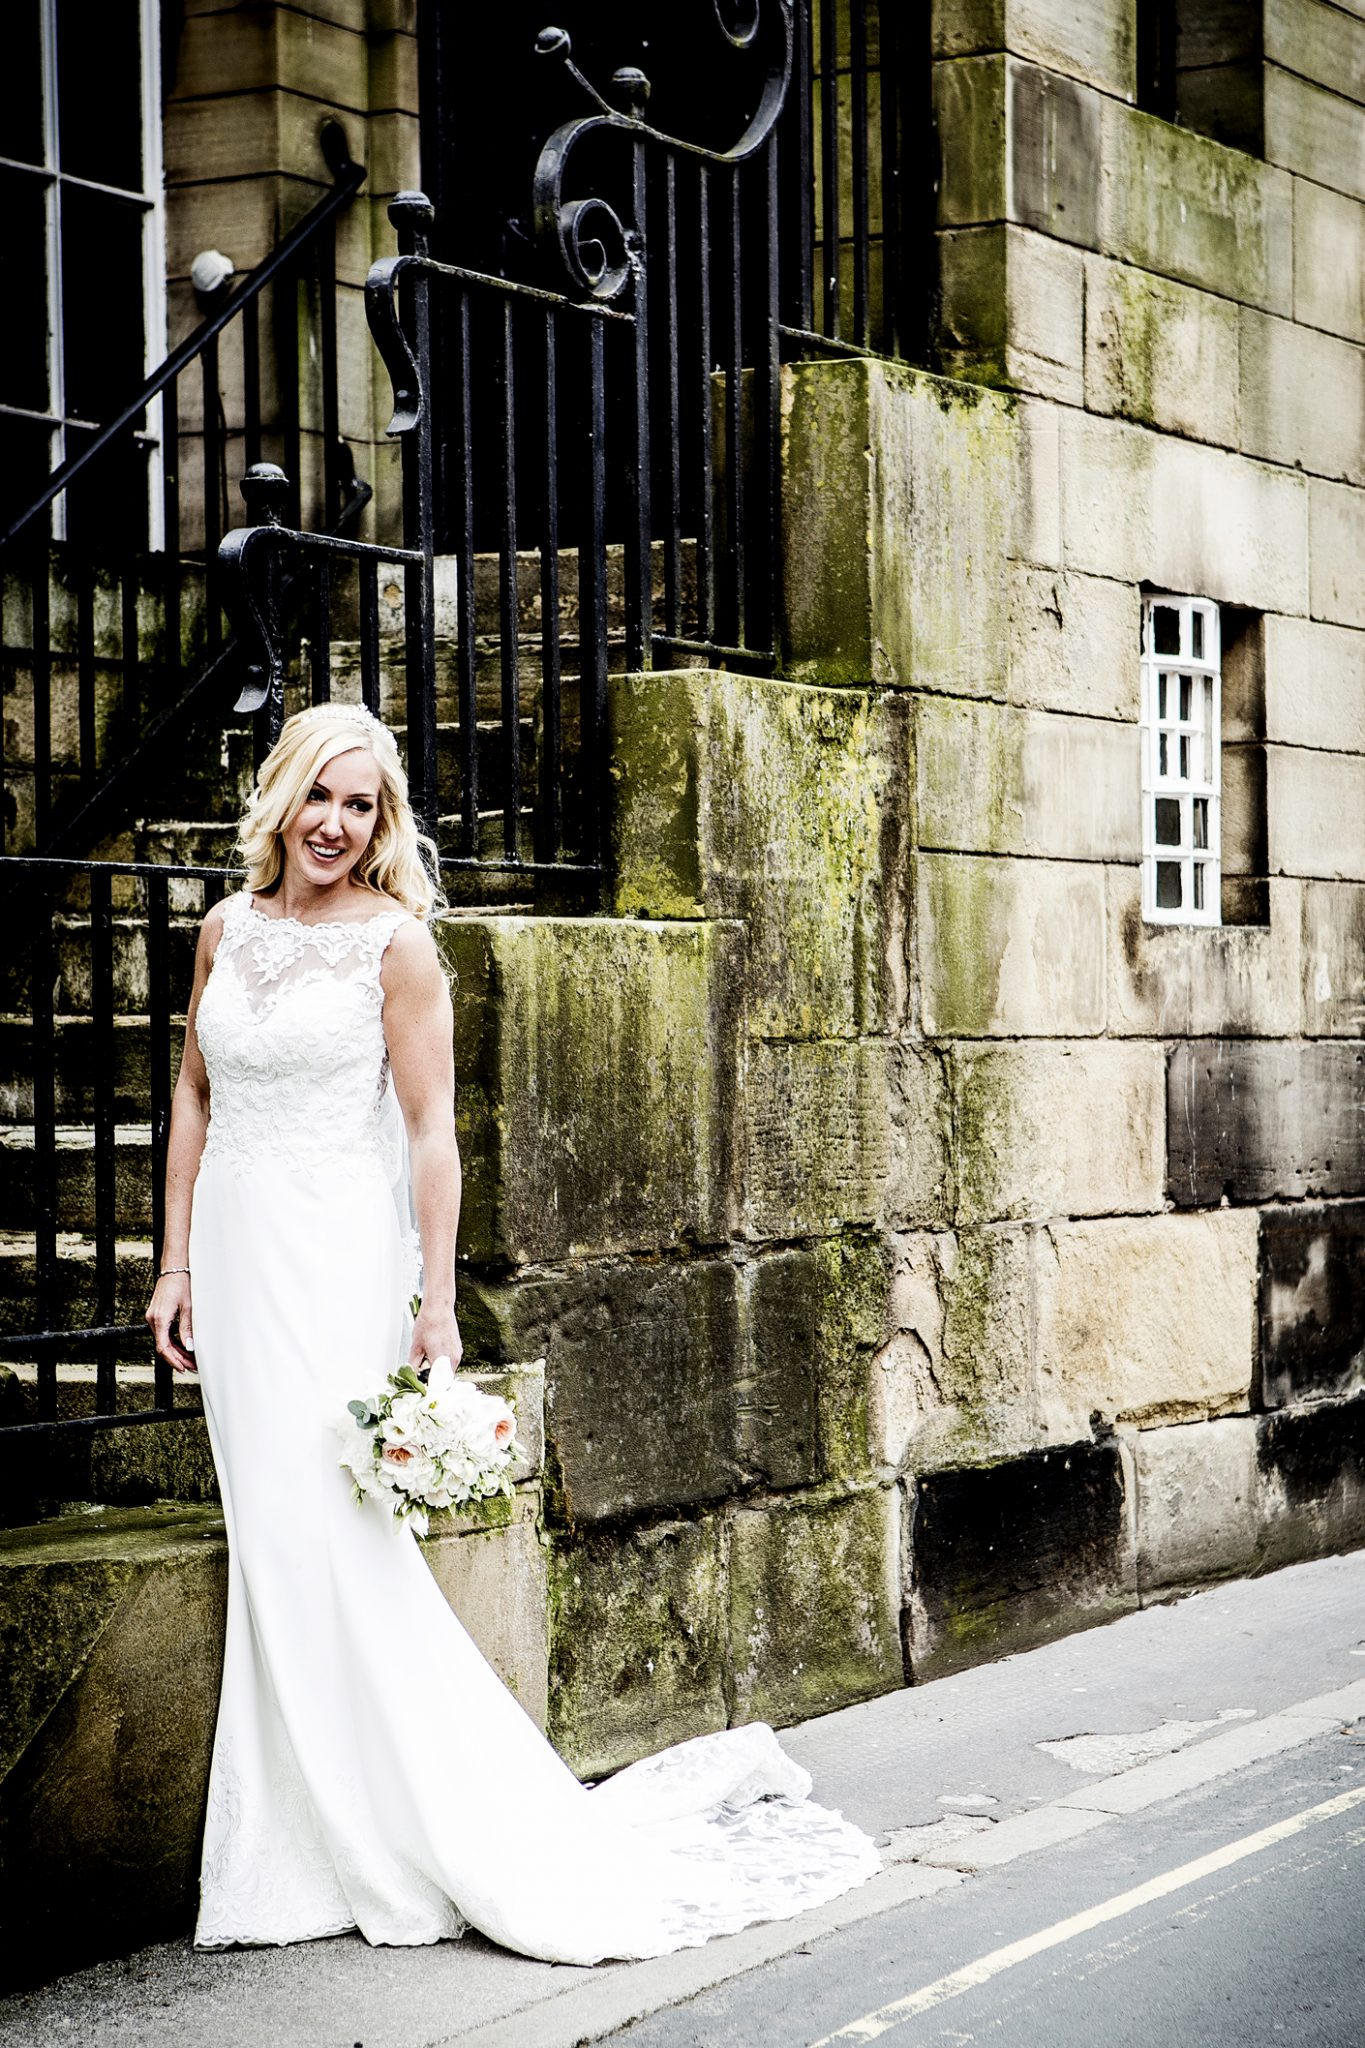 wedding-photography-of-the-bride-outside-the-belle-epoque-hotel-knutsford-cheshire